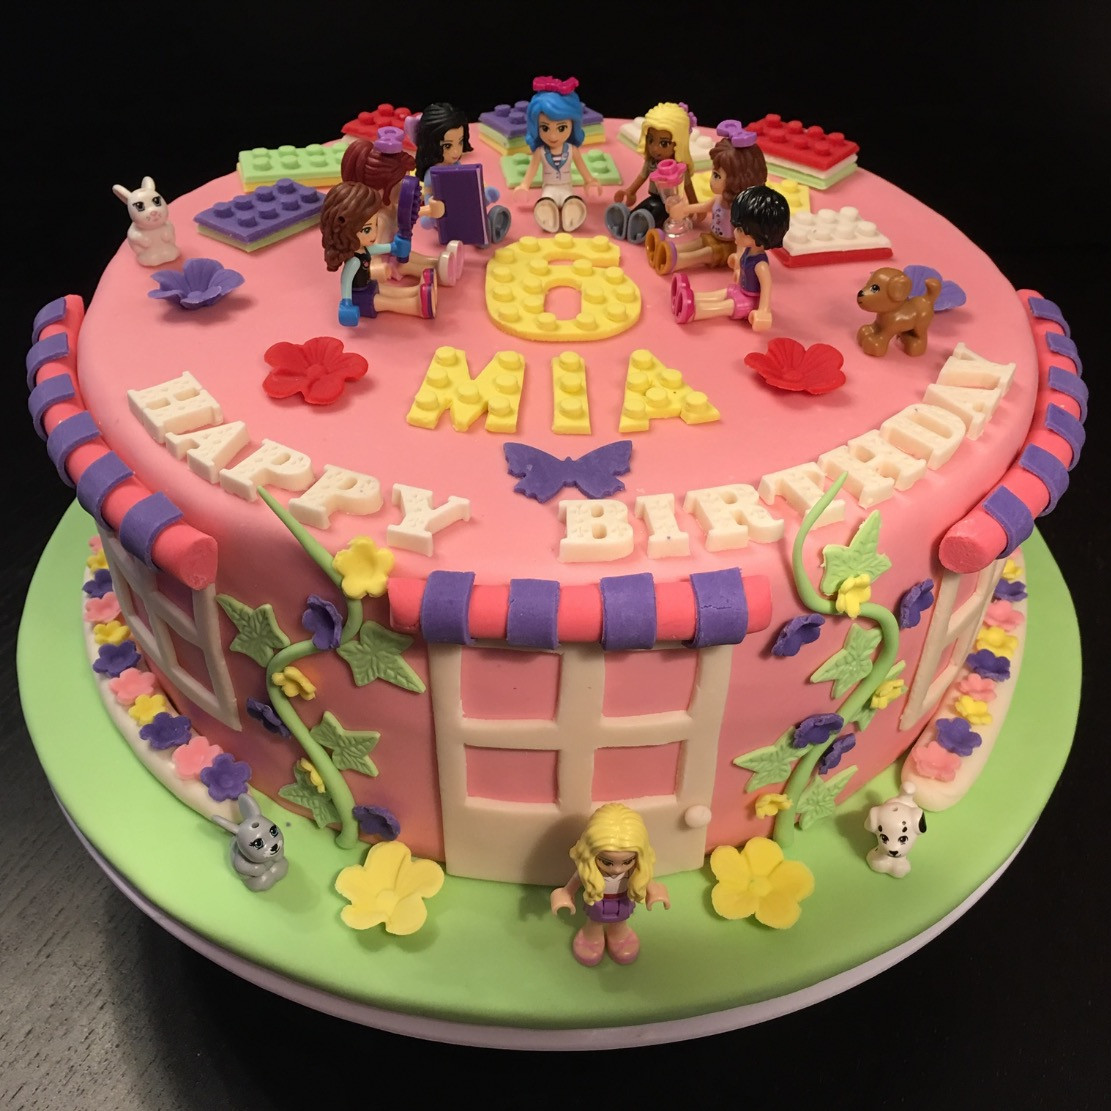 How To Make Lego Friends Birthday Cake